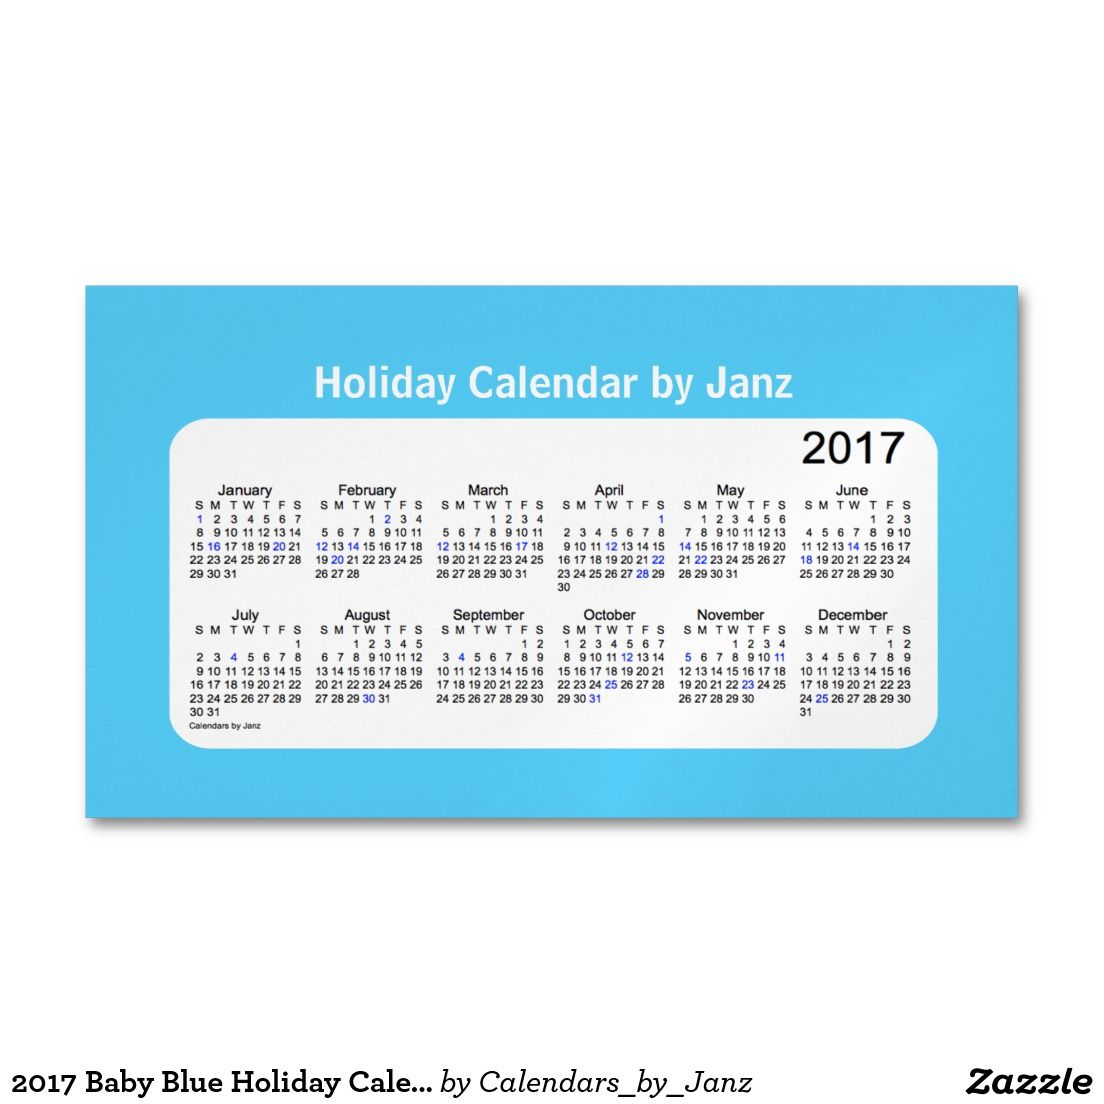 2017 baby blue holiday calendar by janz business card magnet 2017 baby blue holiday calendar by janz business card magnet colourmoves